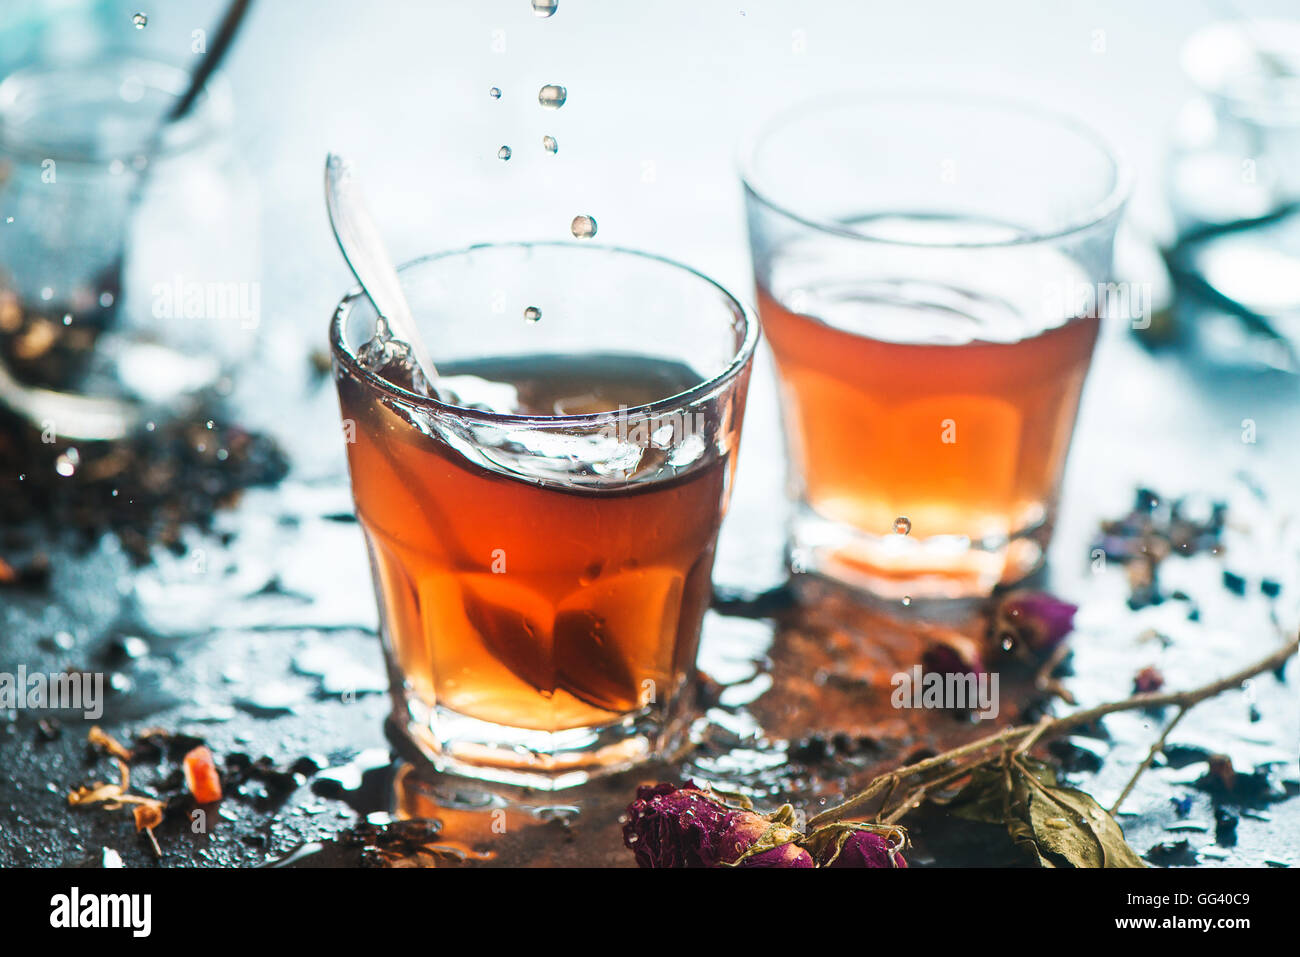 Morning tea with sunshine - Stock Image